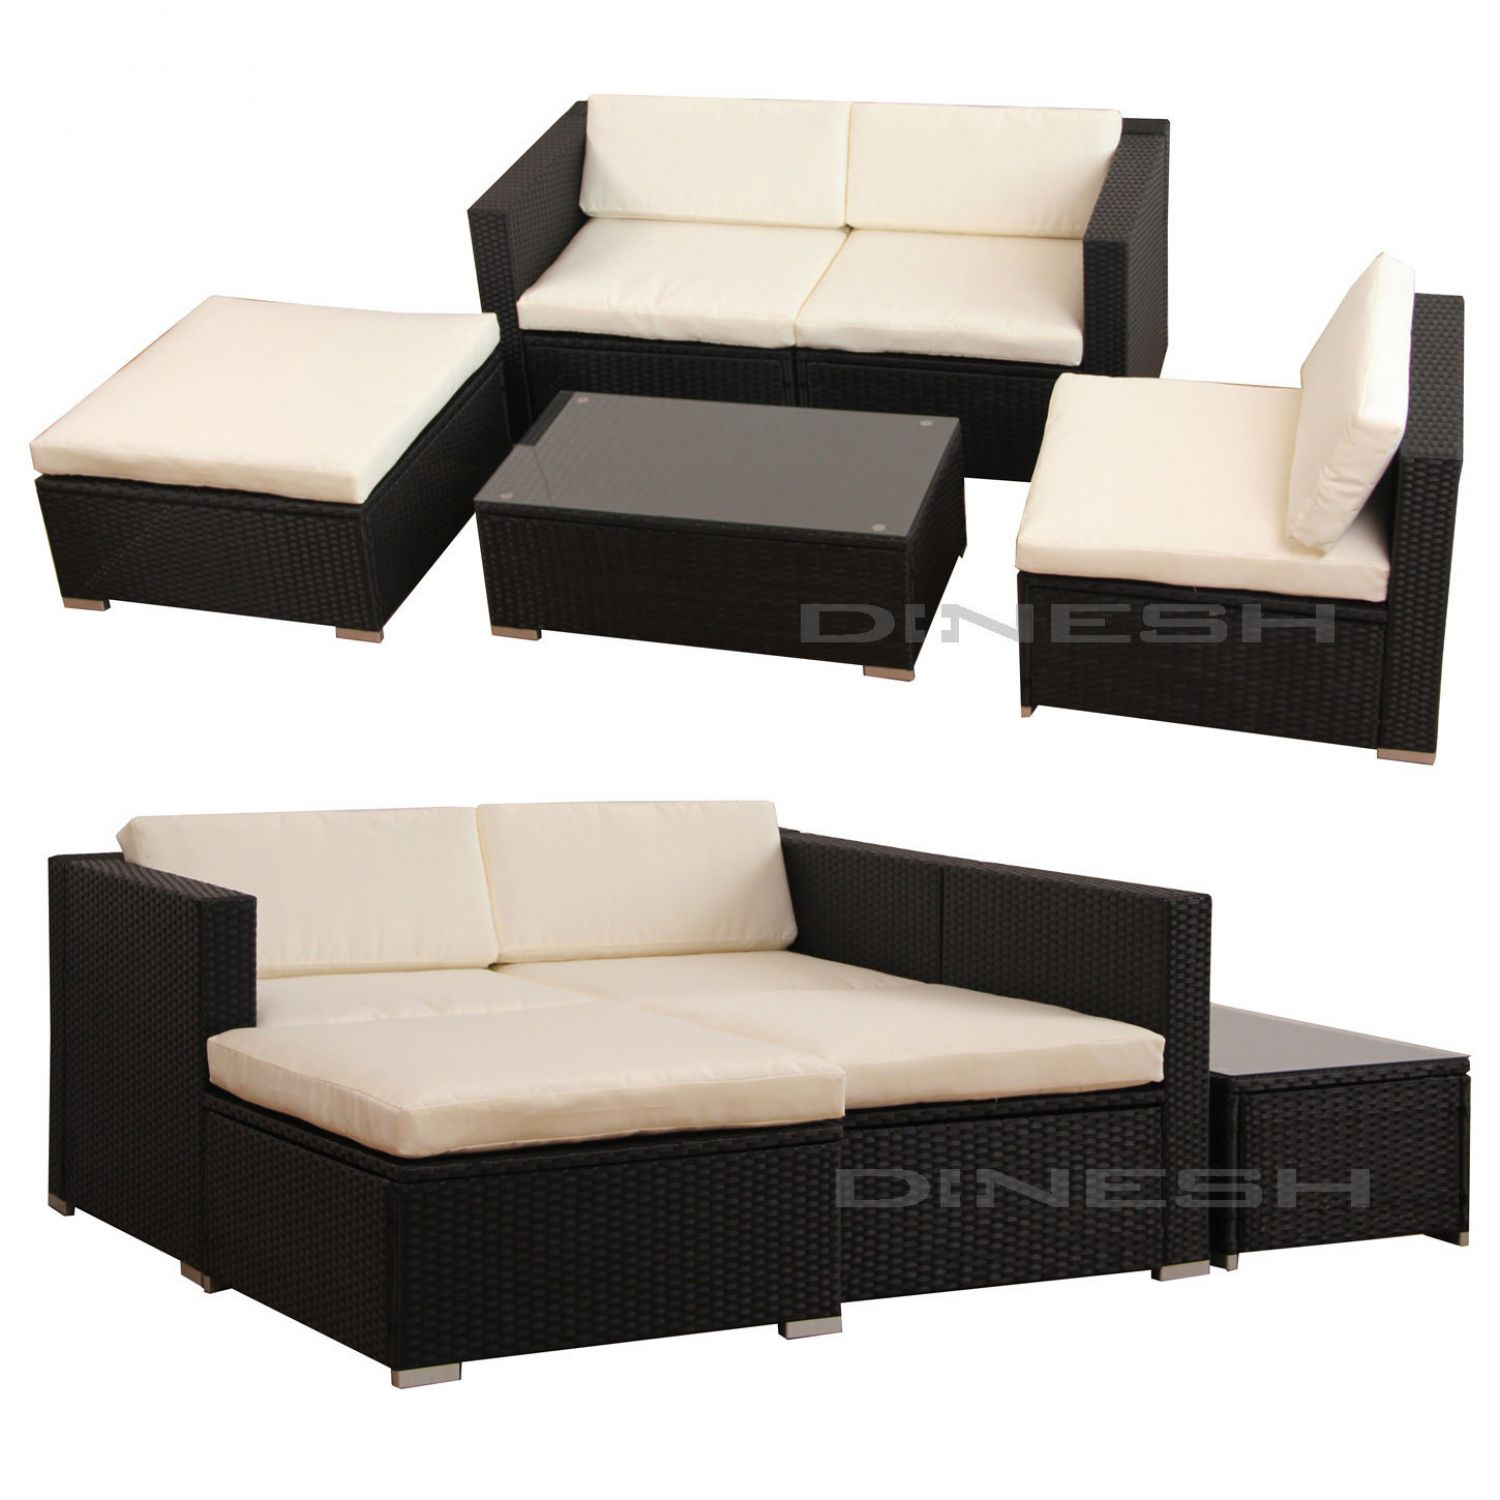 hawaii poly rattan lounge schwarz gartenset sofa garnitur polyrattan gartenm bel ebay. Black Bedroom Furniture Sets. Home Design Ideas